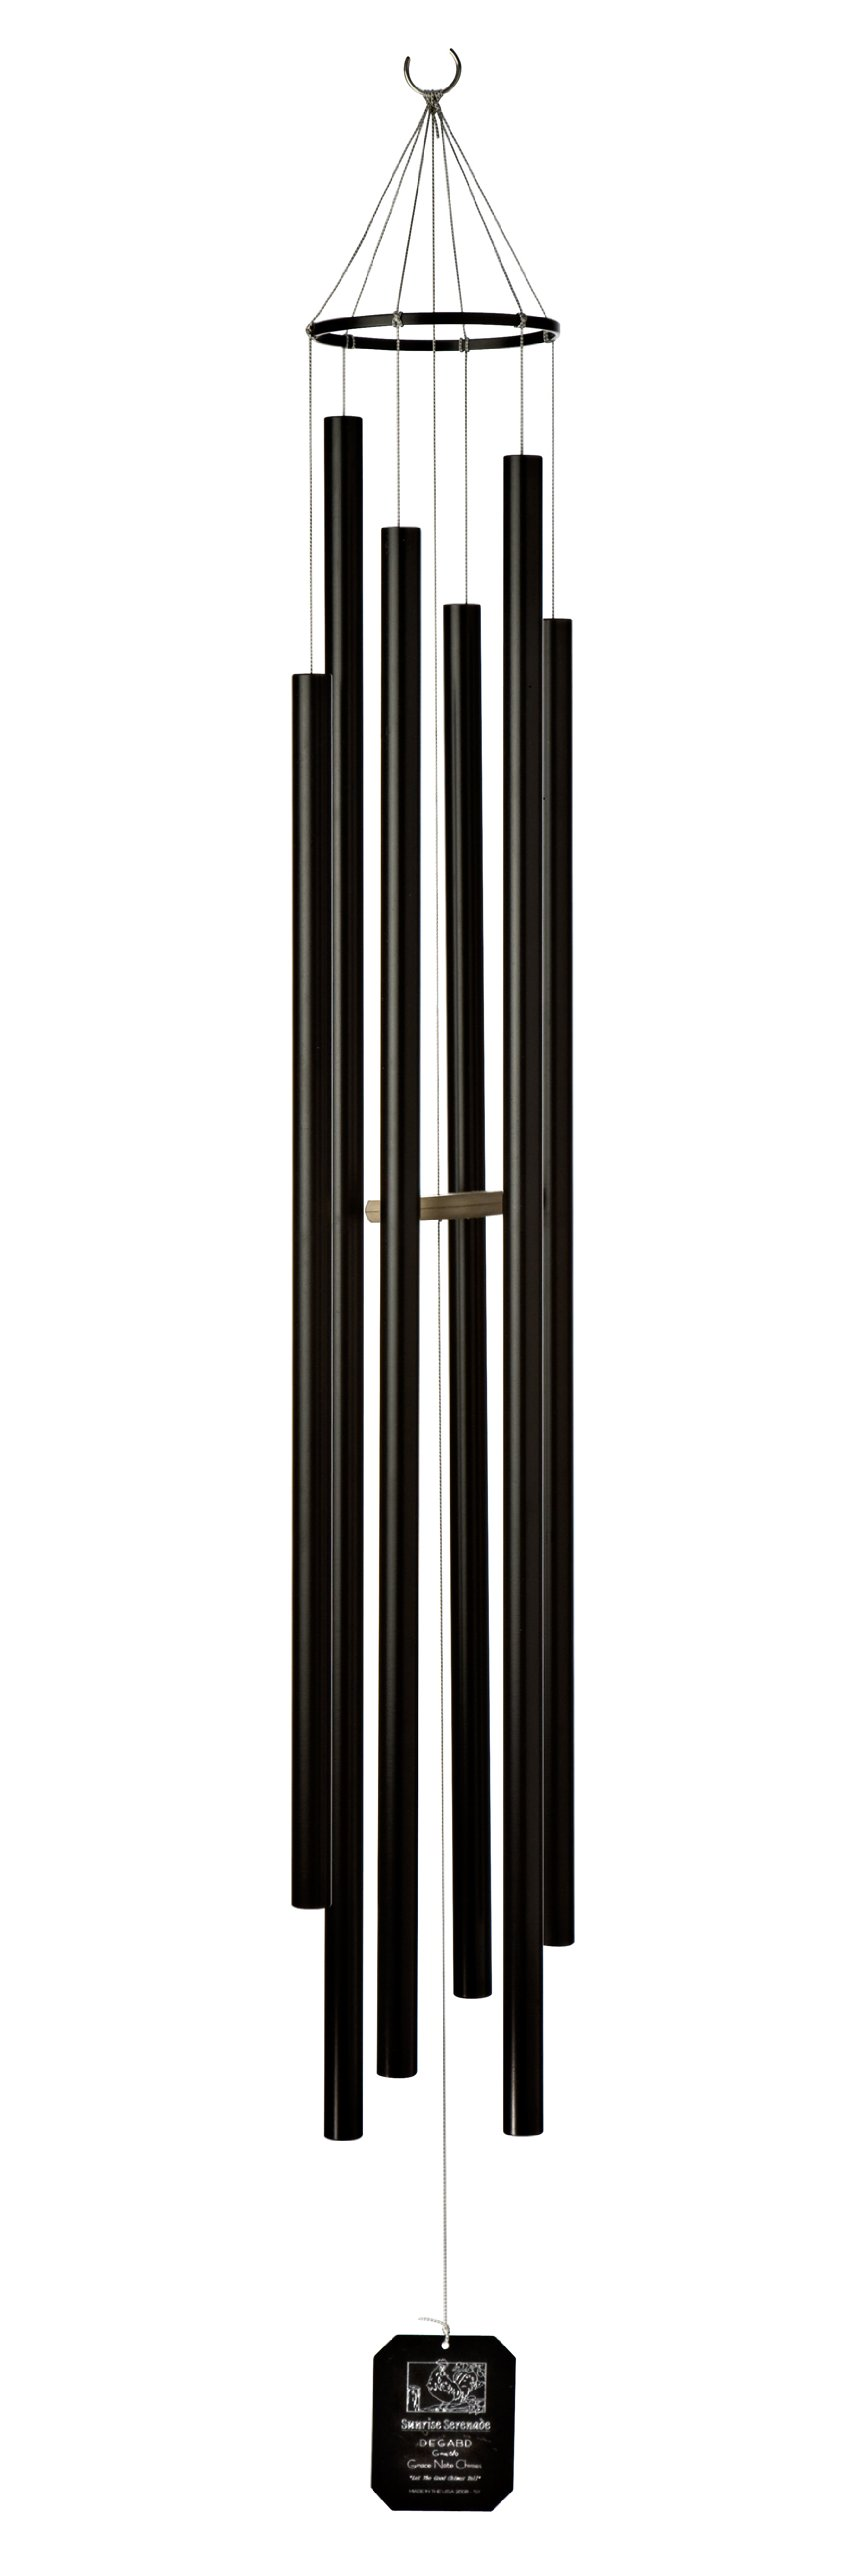 Grace Note Chimes 7STB Regular Steeple Sunrise Serenade Wind Chimes, 57-Inch, Black by Grace Note Chimes